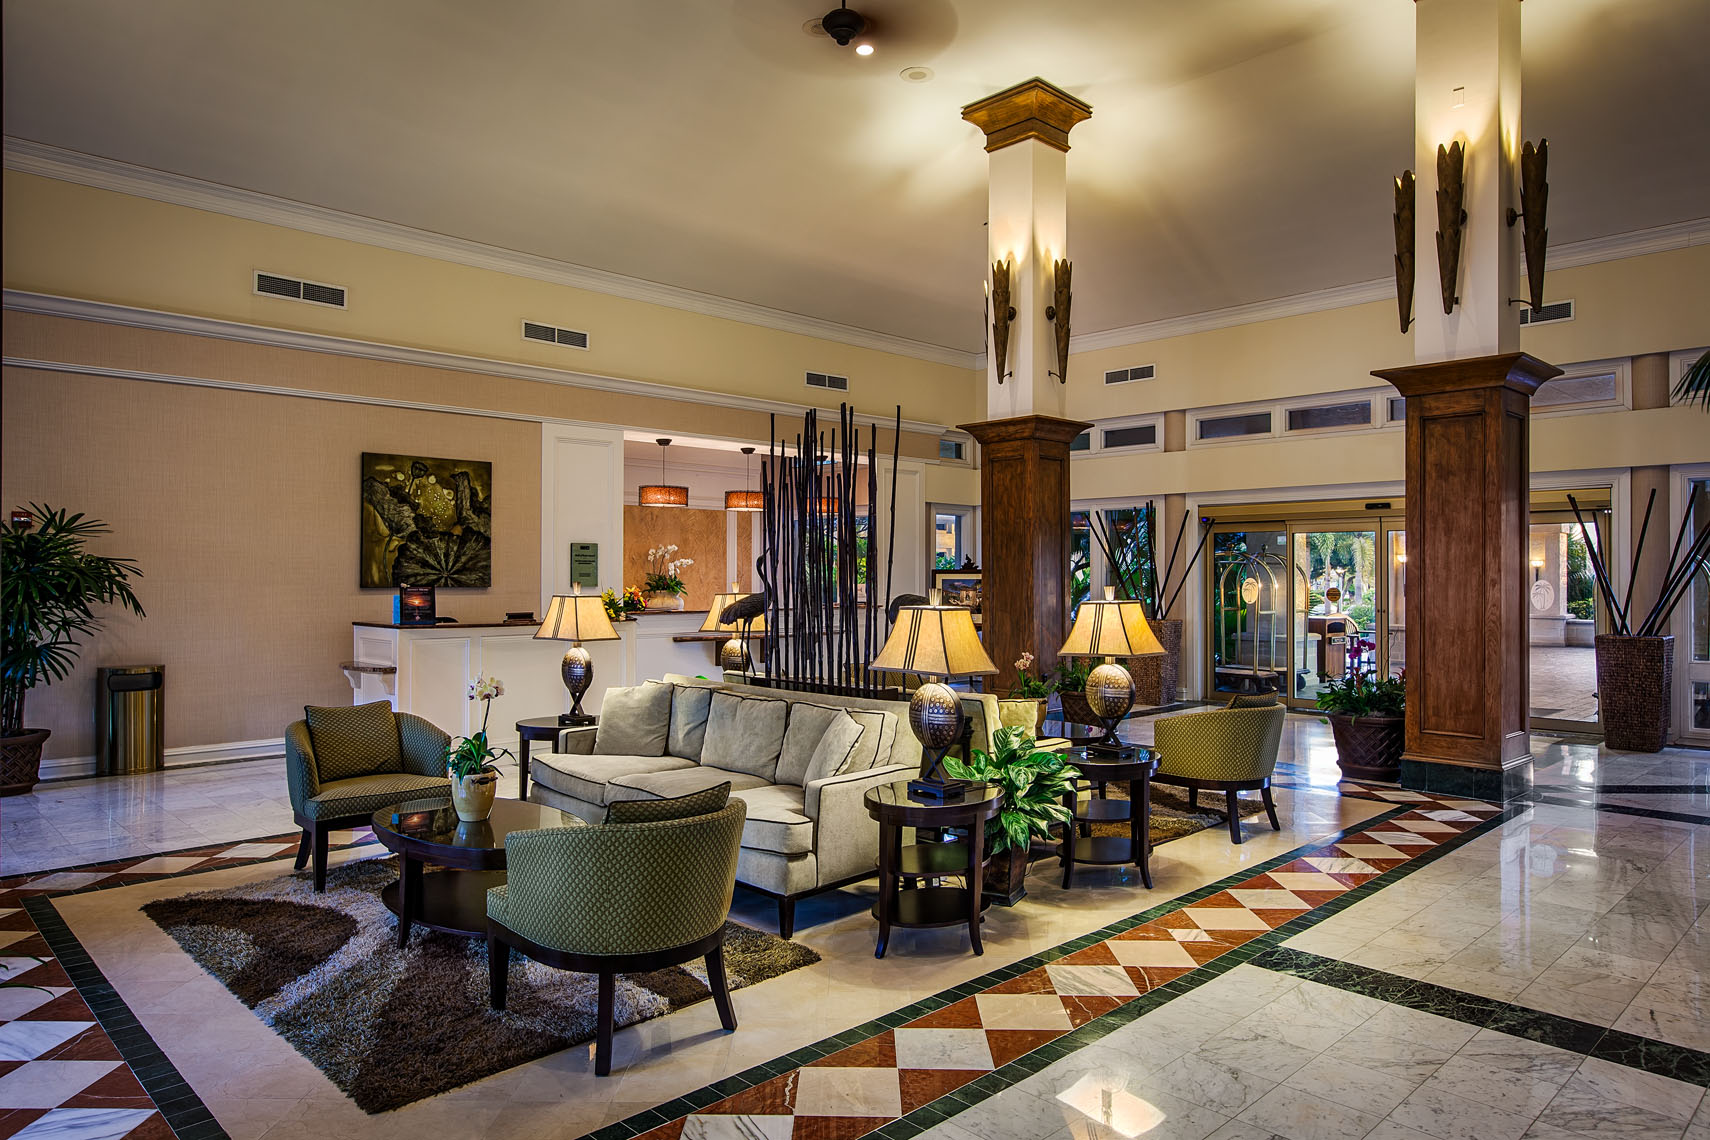 Interior photograph of a luxury hotel resort by Denver Colorado based architectural hotel and resort photographer Richard Steinberger